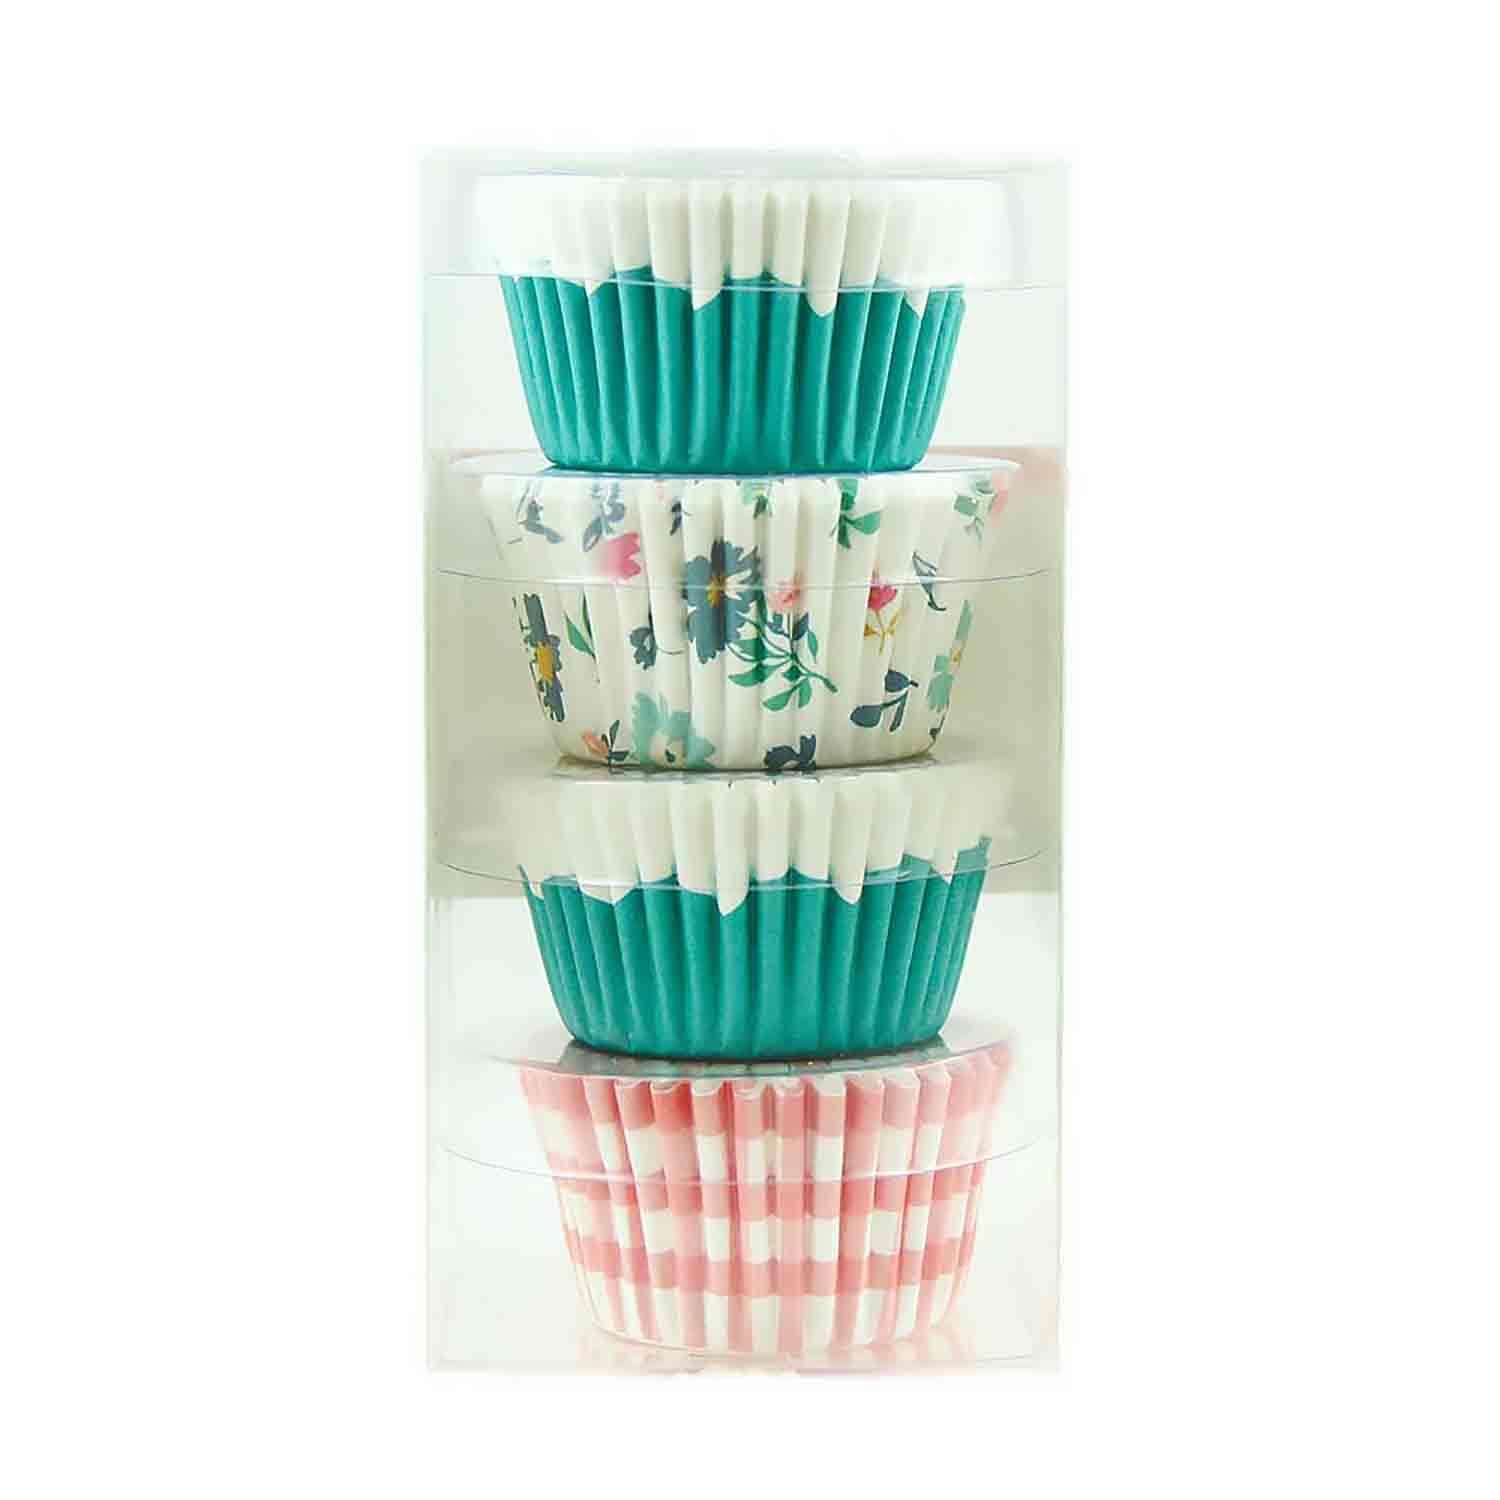 Picnic Mini Baking Cups